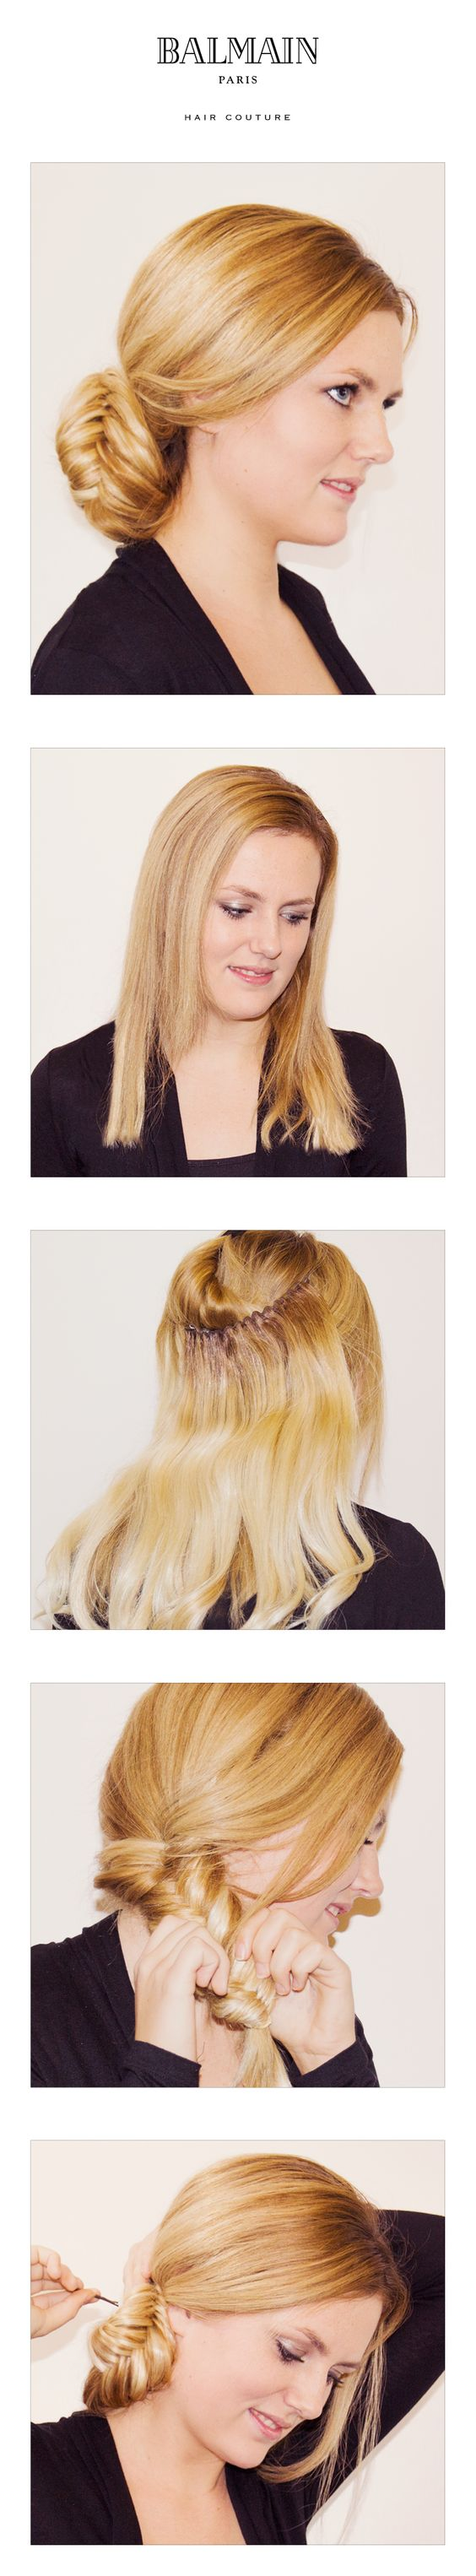 Use the Balmain Hairdress to create more volume and make some sweet updo's.